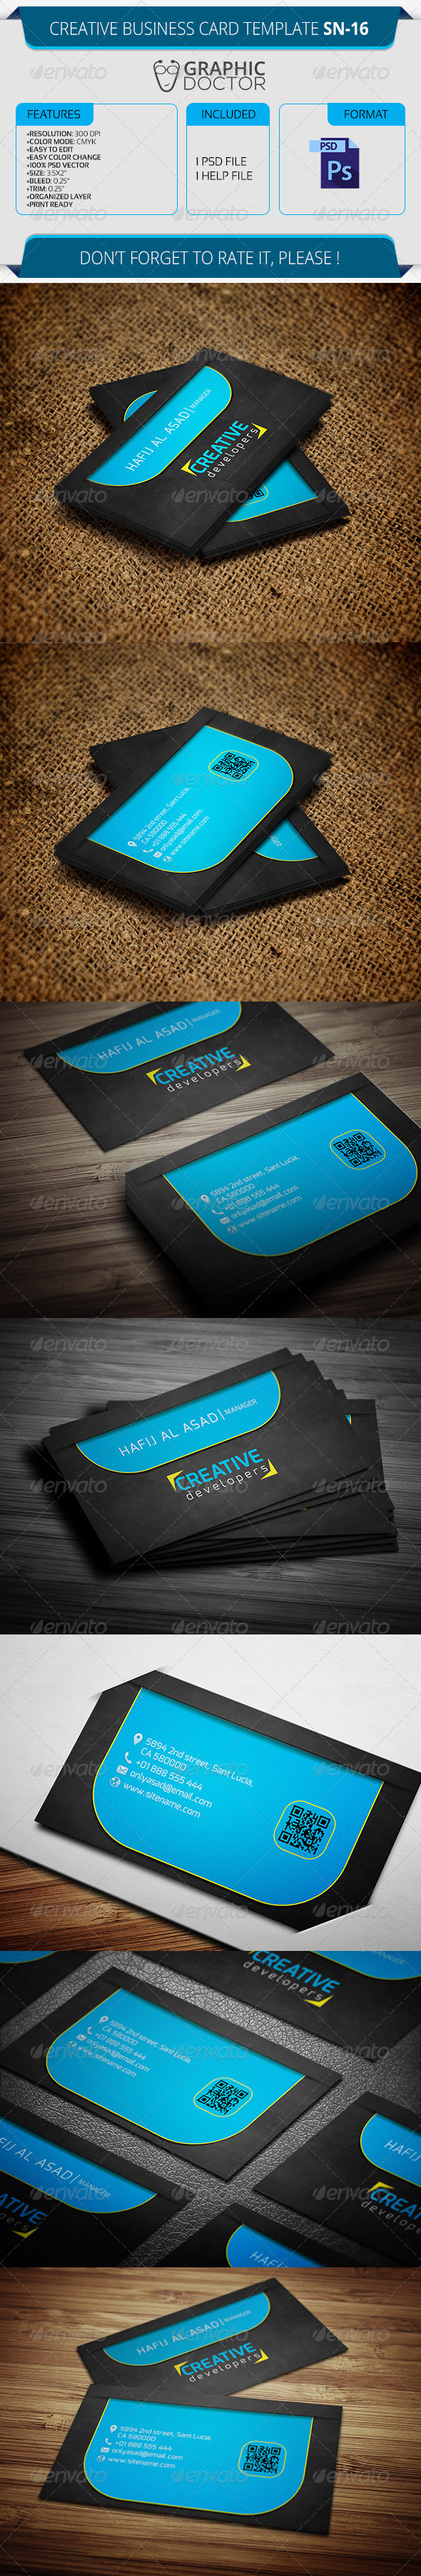 Creative Business Card Template SN-16 - Creative Business Cards